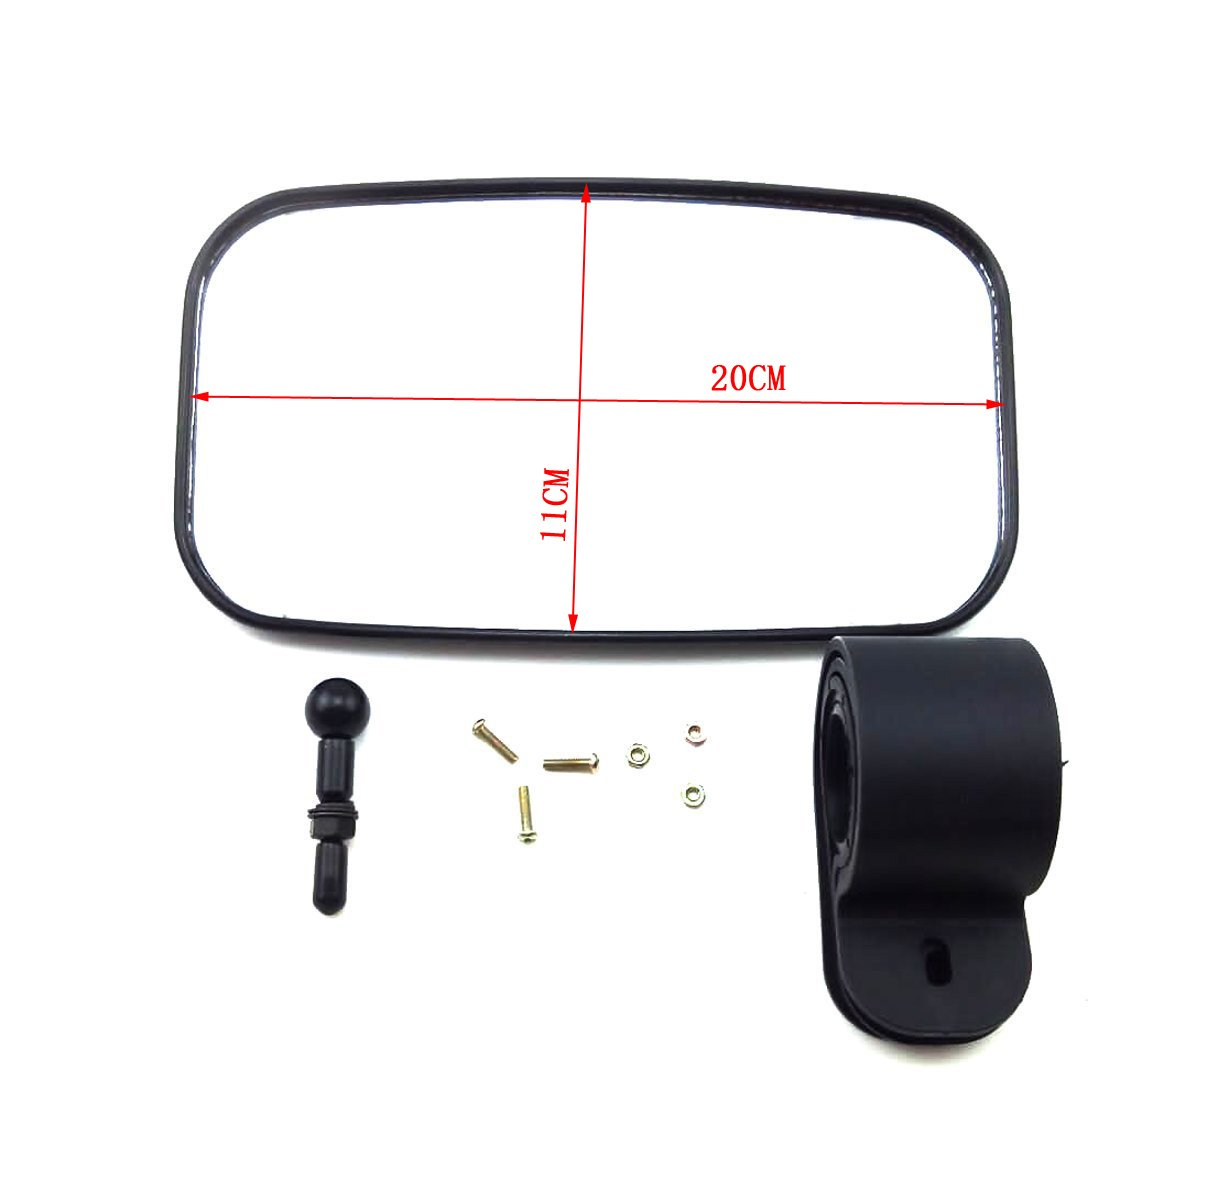 OKSTNO UTV Rear View Mirror for 1.5'' - 2'' Roll Cage with Shatter-Proof Tempered Glass Fits to Polaris Ranger,RZR Can Am Commander,Maverick Yamaha Viking,Rhino,Honda,Gator,Mirrors by OKSTNO (Image #6)